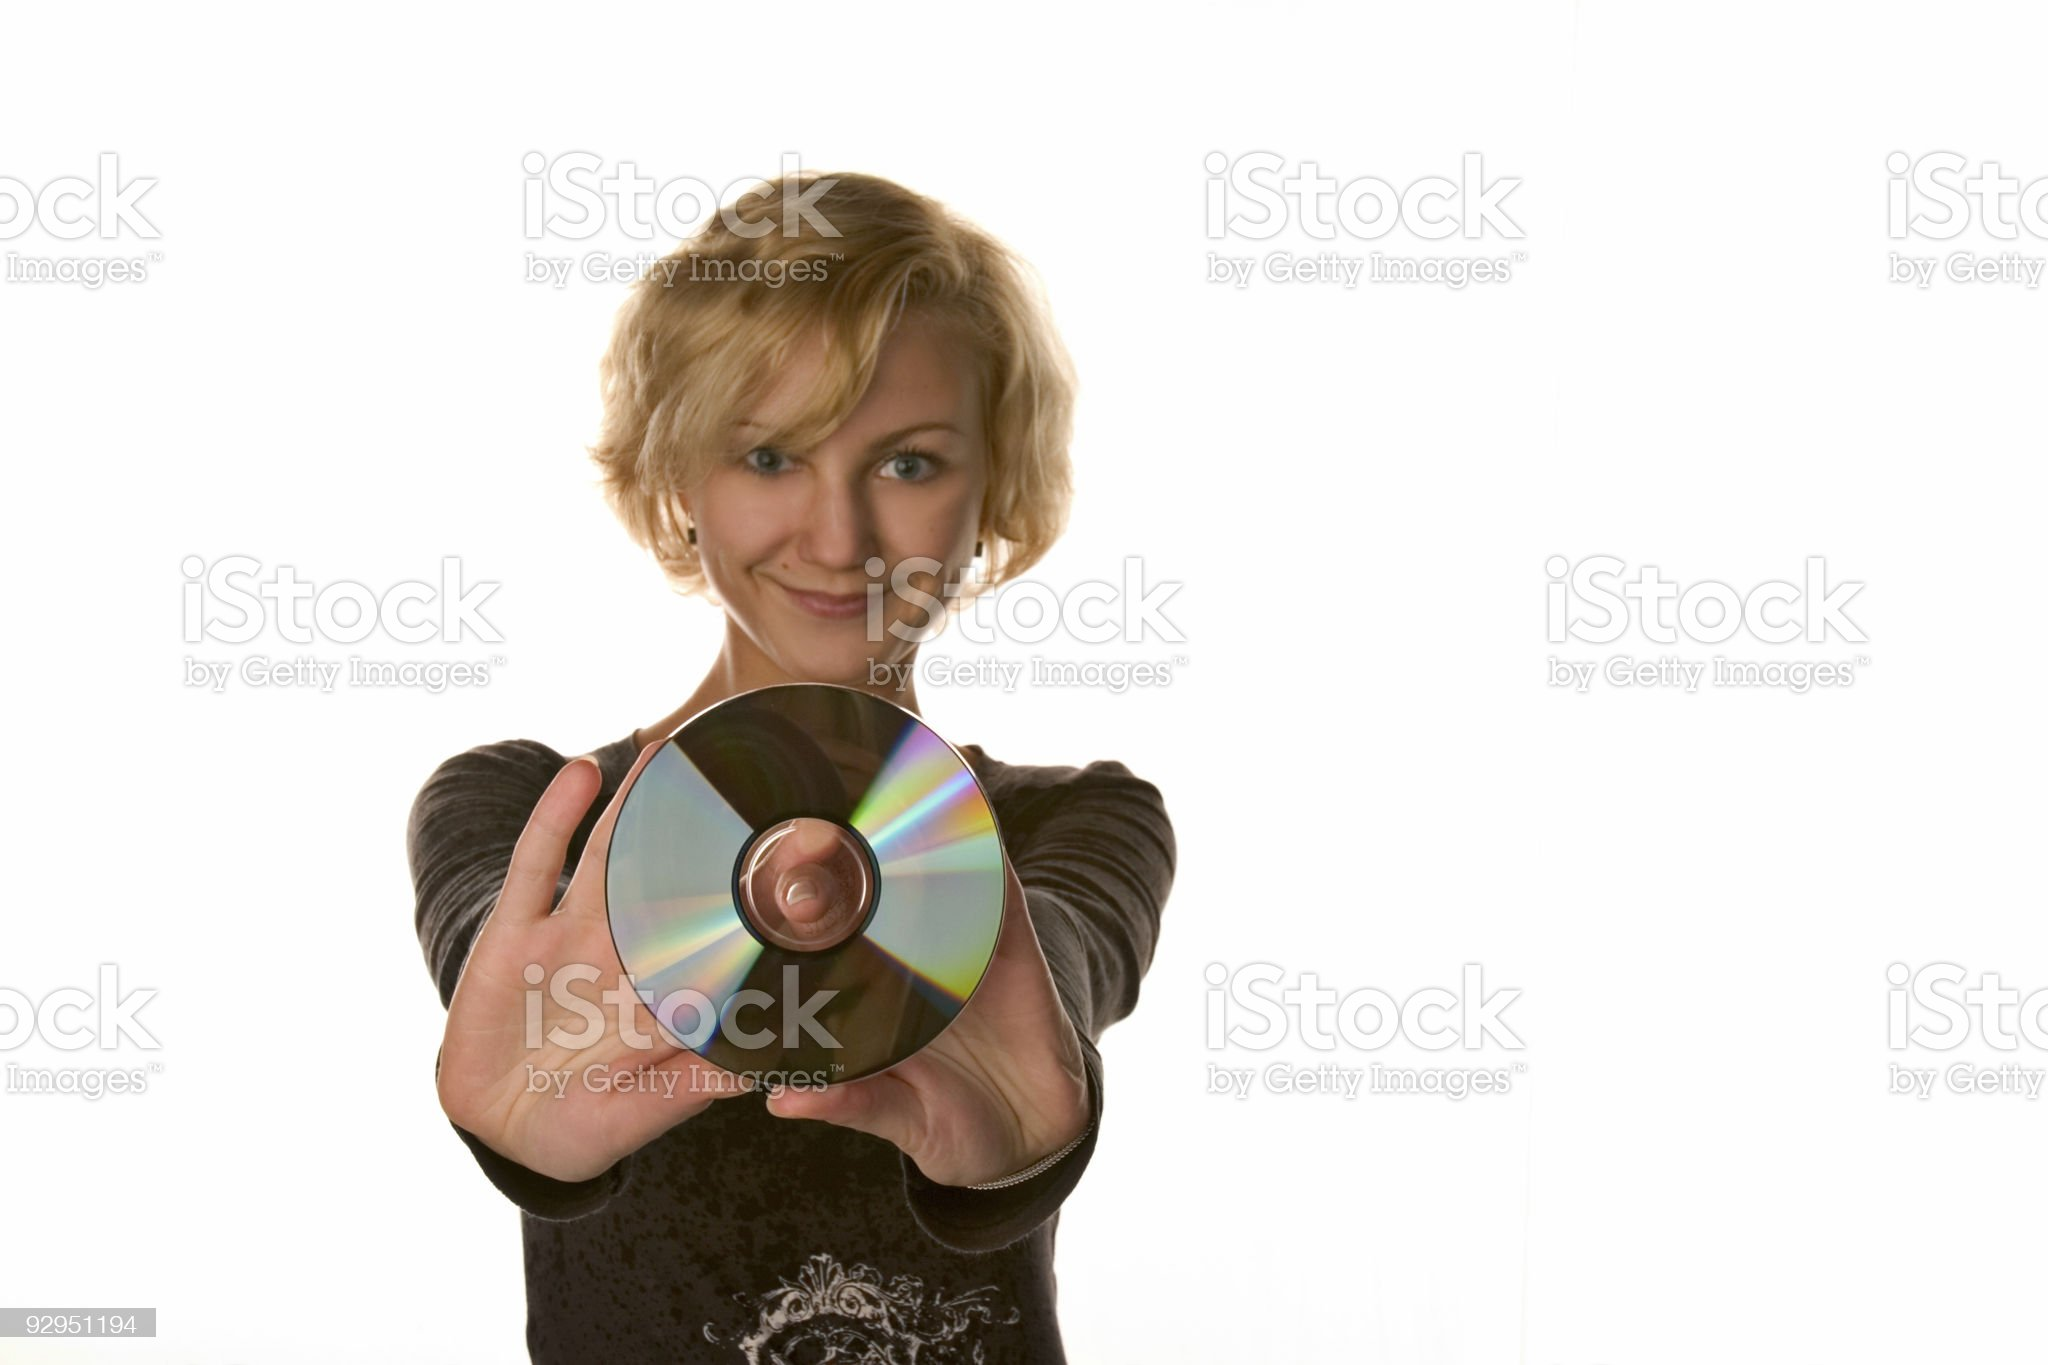 Pretty young girl with CD or DVD disc royalty-free stock photo